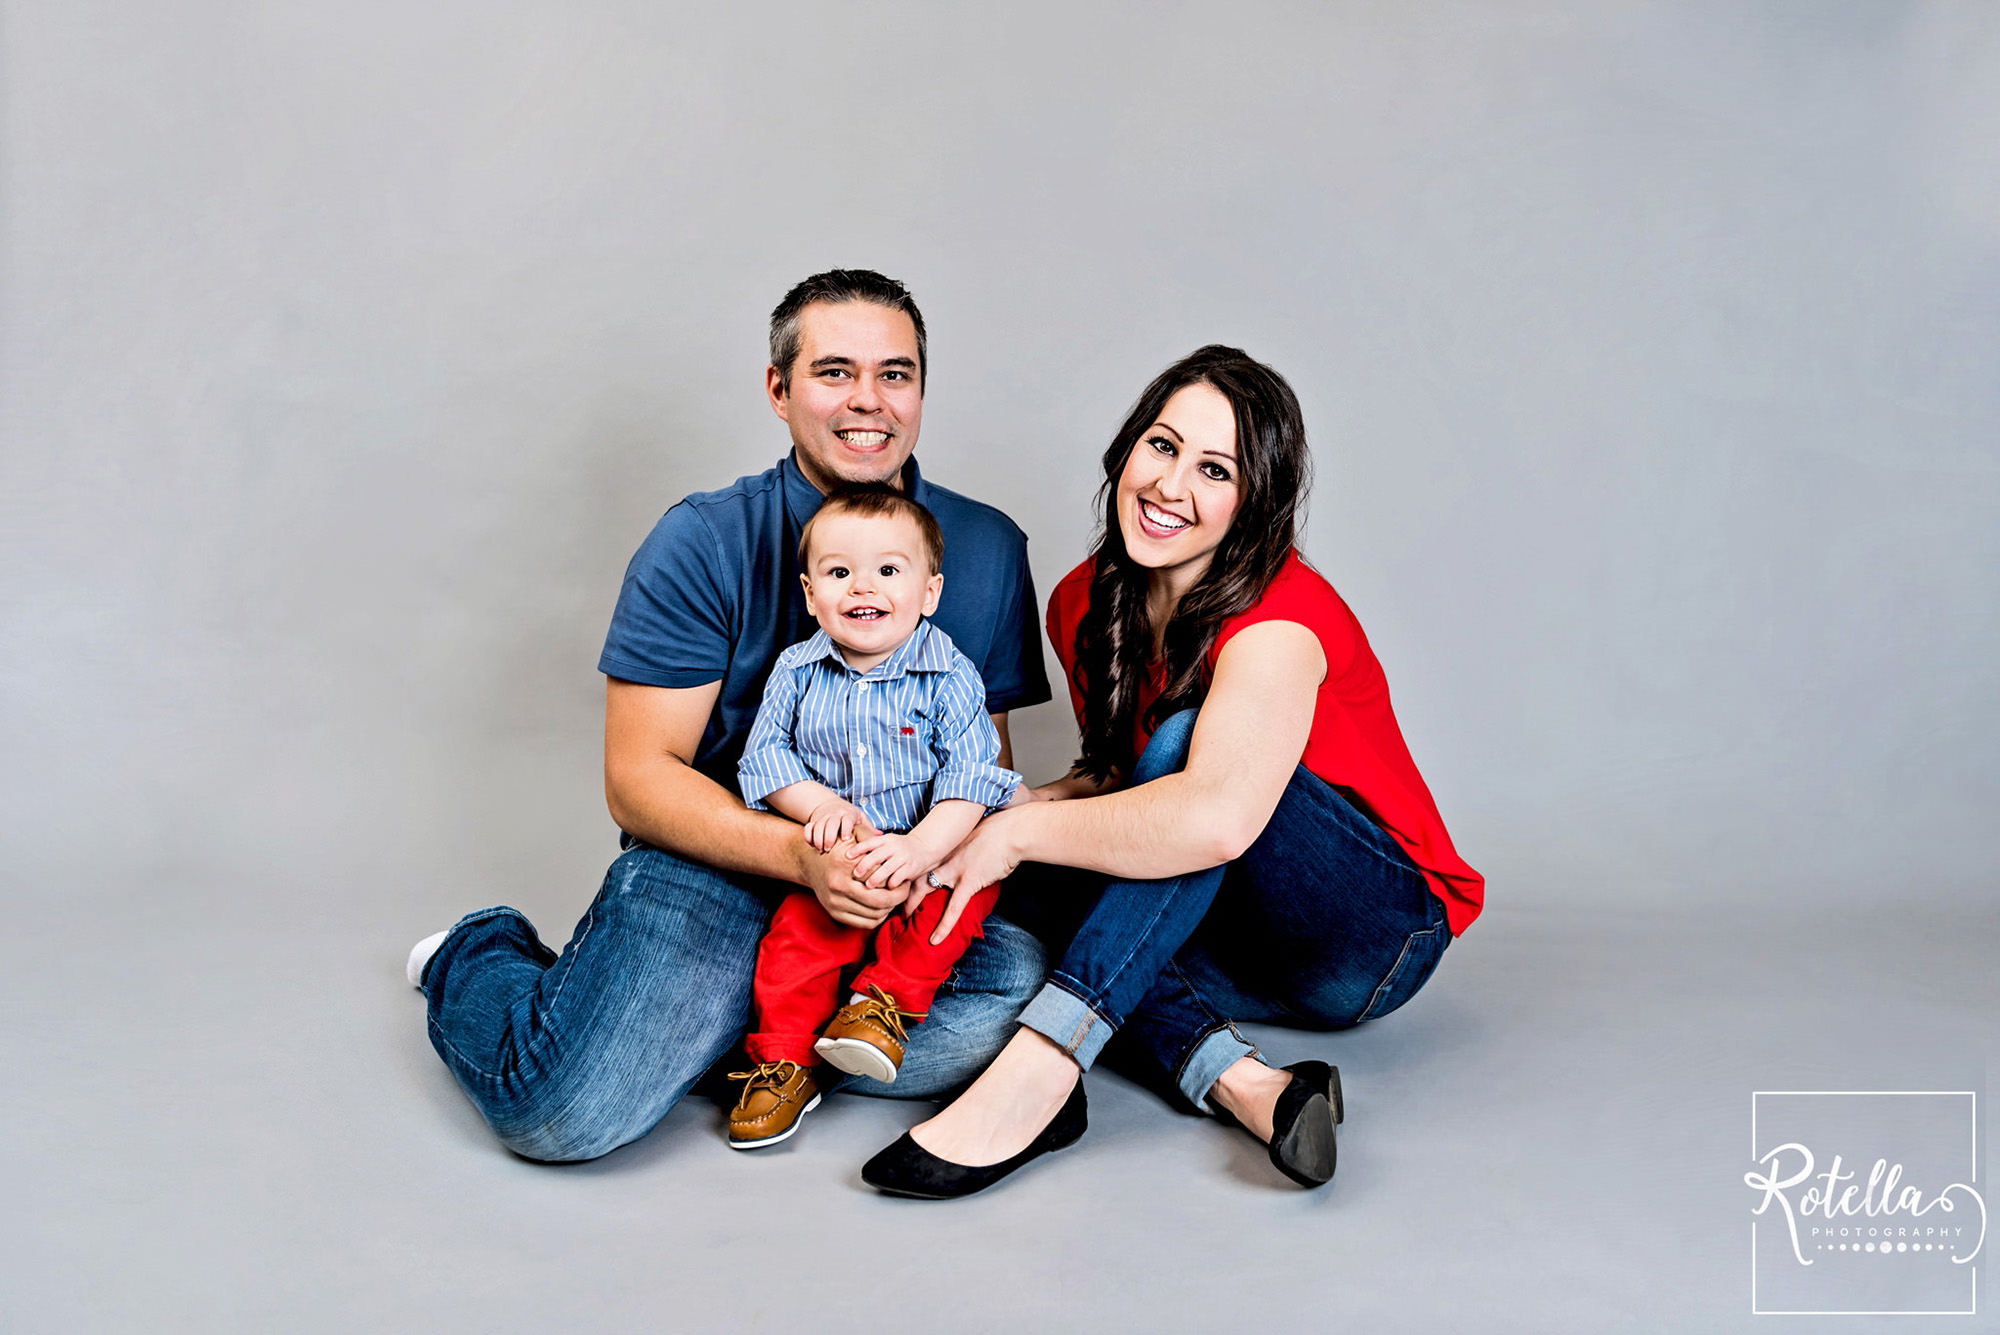 Rotella Photography Family Picture on grey backdrop in studio